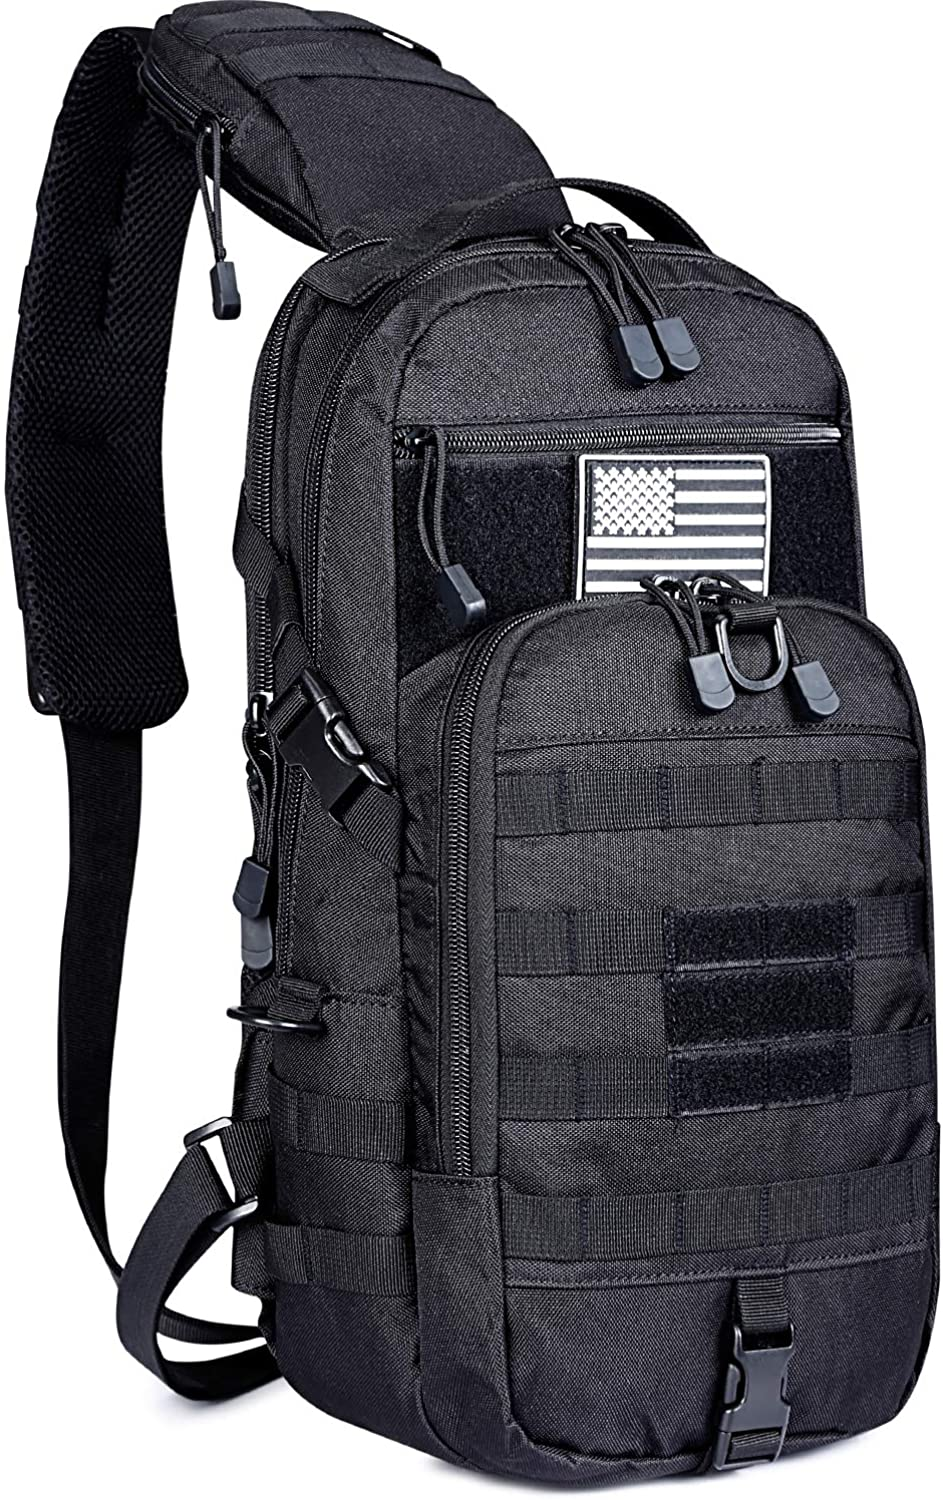 G4Free EDC Bag Tactical Sling Bag Fishing Tackle Molle Chest Shoulder Pack Rectangular Outdoor Daypack